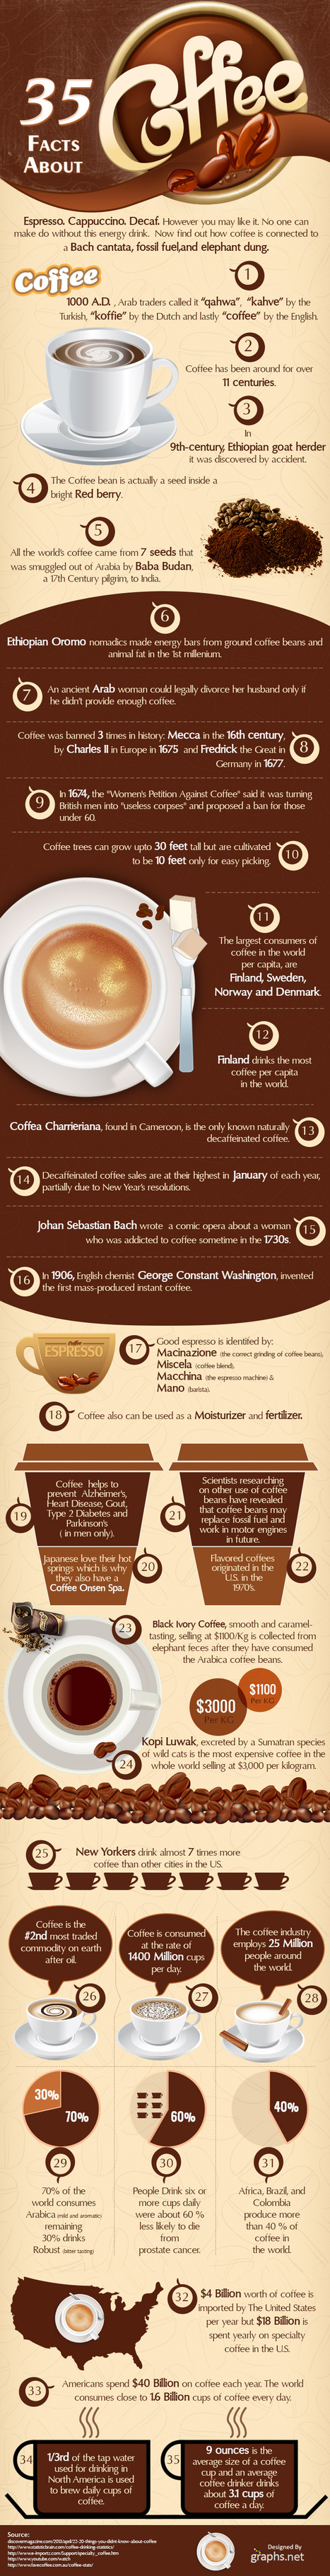 35 Facts about Coffee | Foodie dreams | Scoop.it